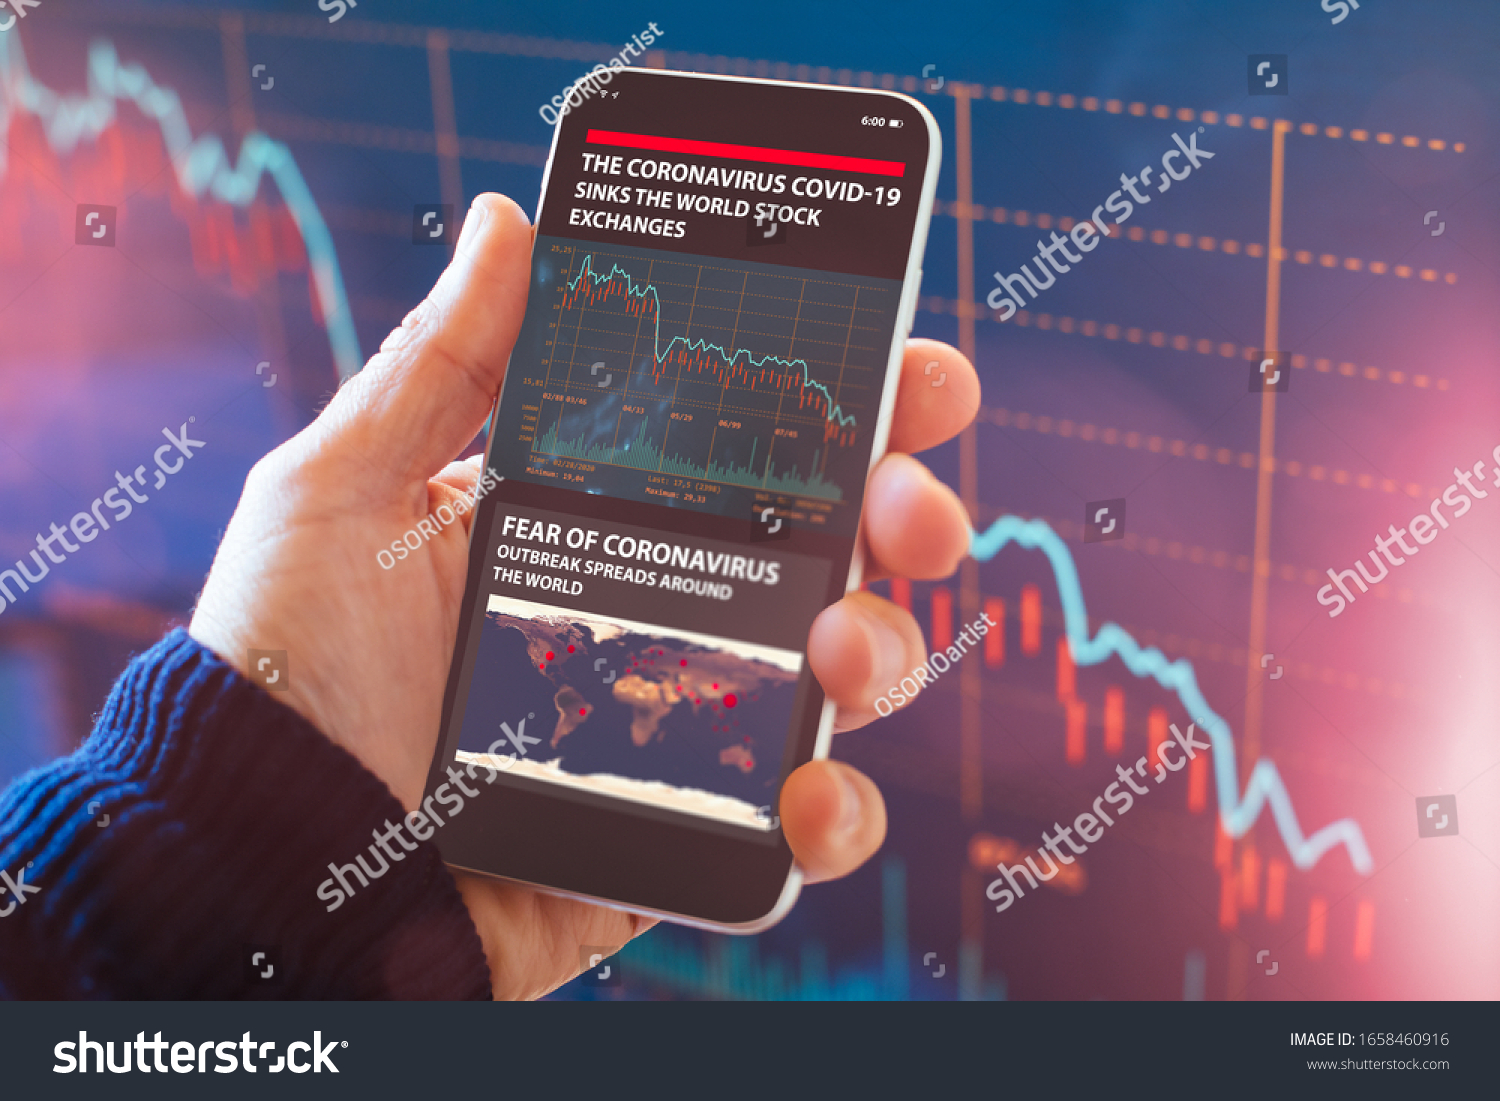 The coronavirus sinks the global stock exchanges. Smartphone app showing the collapse of the stock market due to the global Coronavirus virus crisis. #1658460916